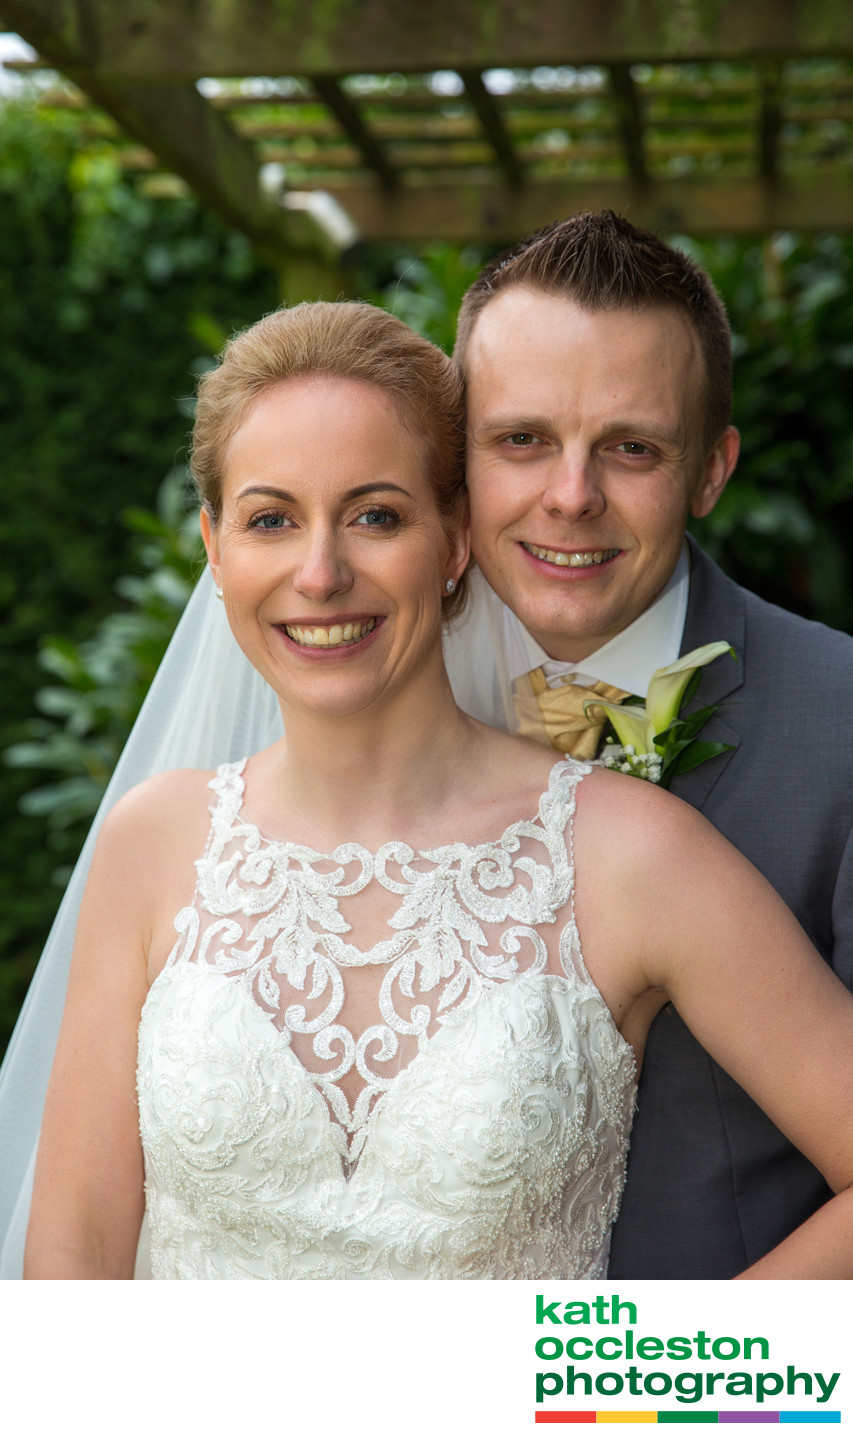 Relaxed wedding photos at Singleton Lodge